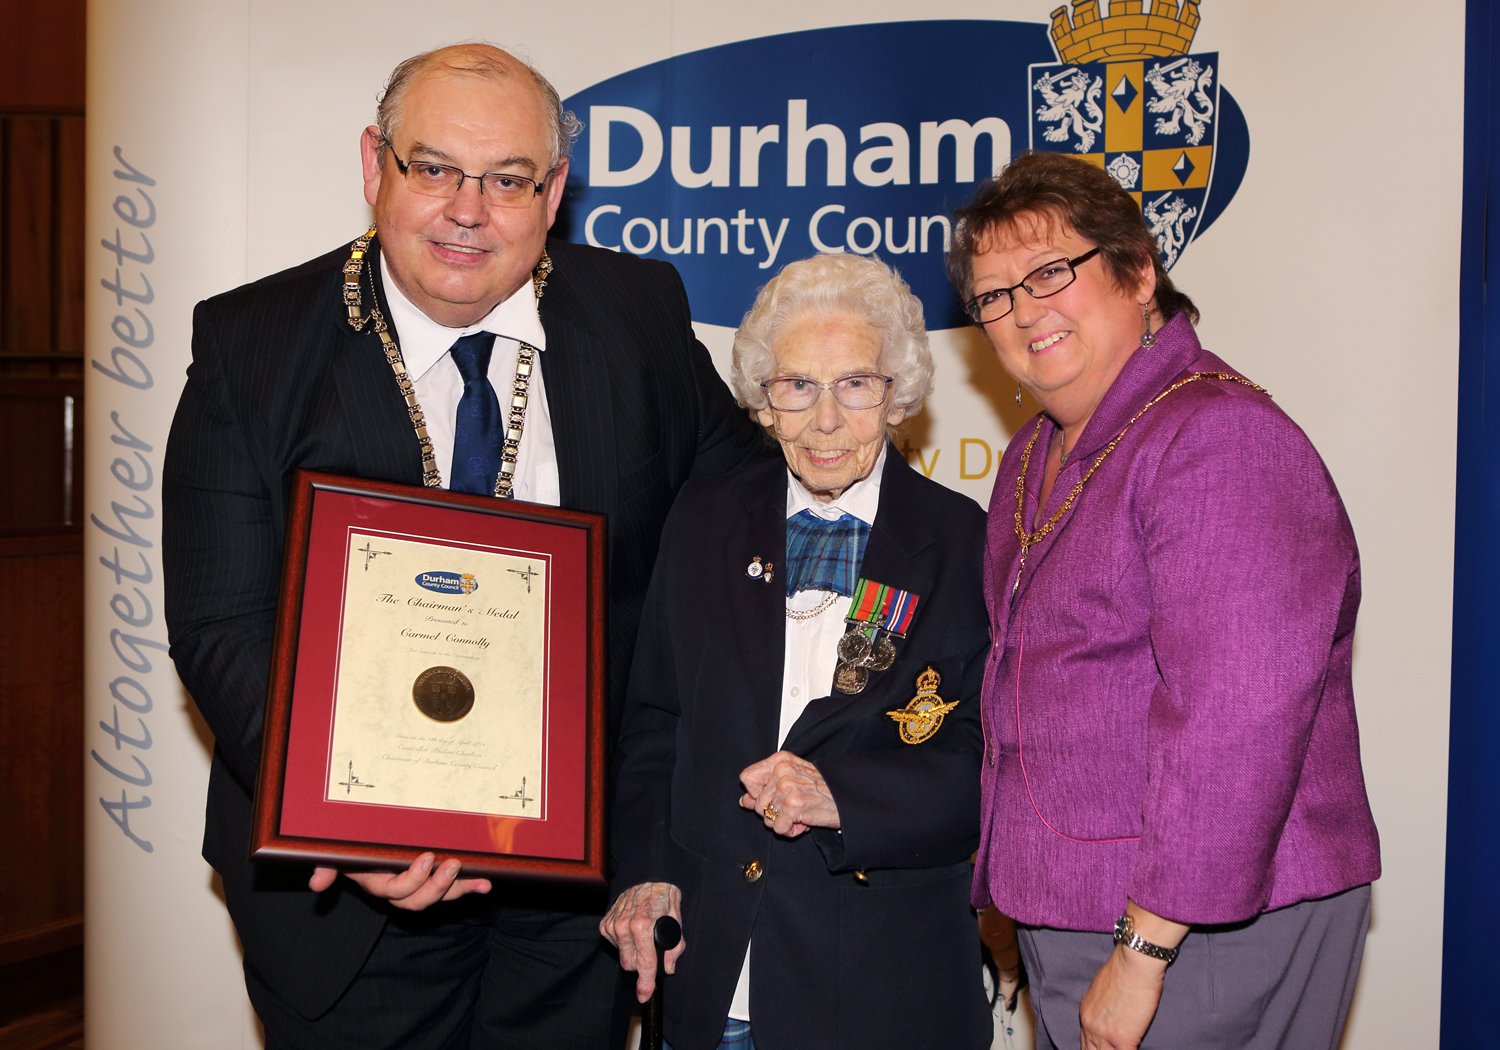 CHARITY STALWART: Carmel Connolly accepts the chairman's medal from Coun John Robinson and consort Maxine Robinson